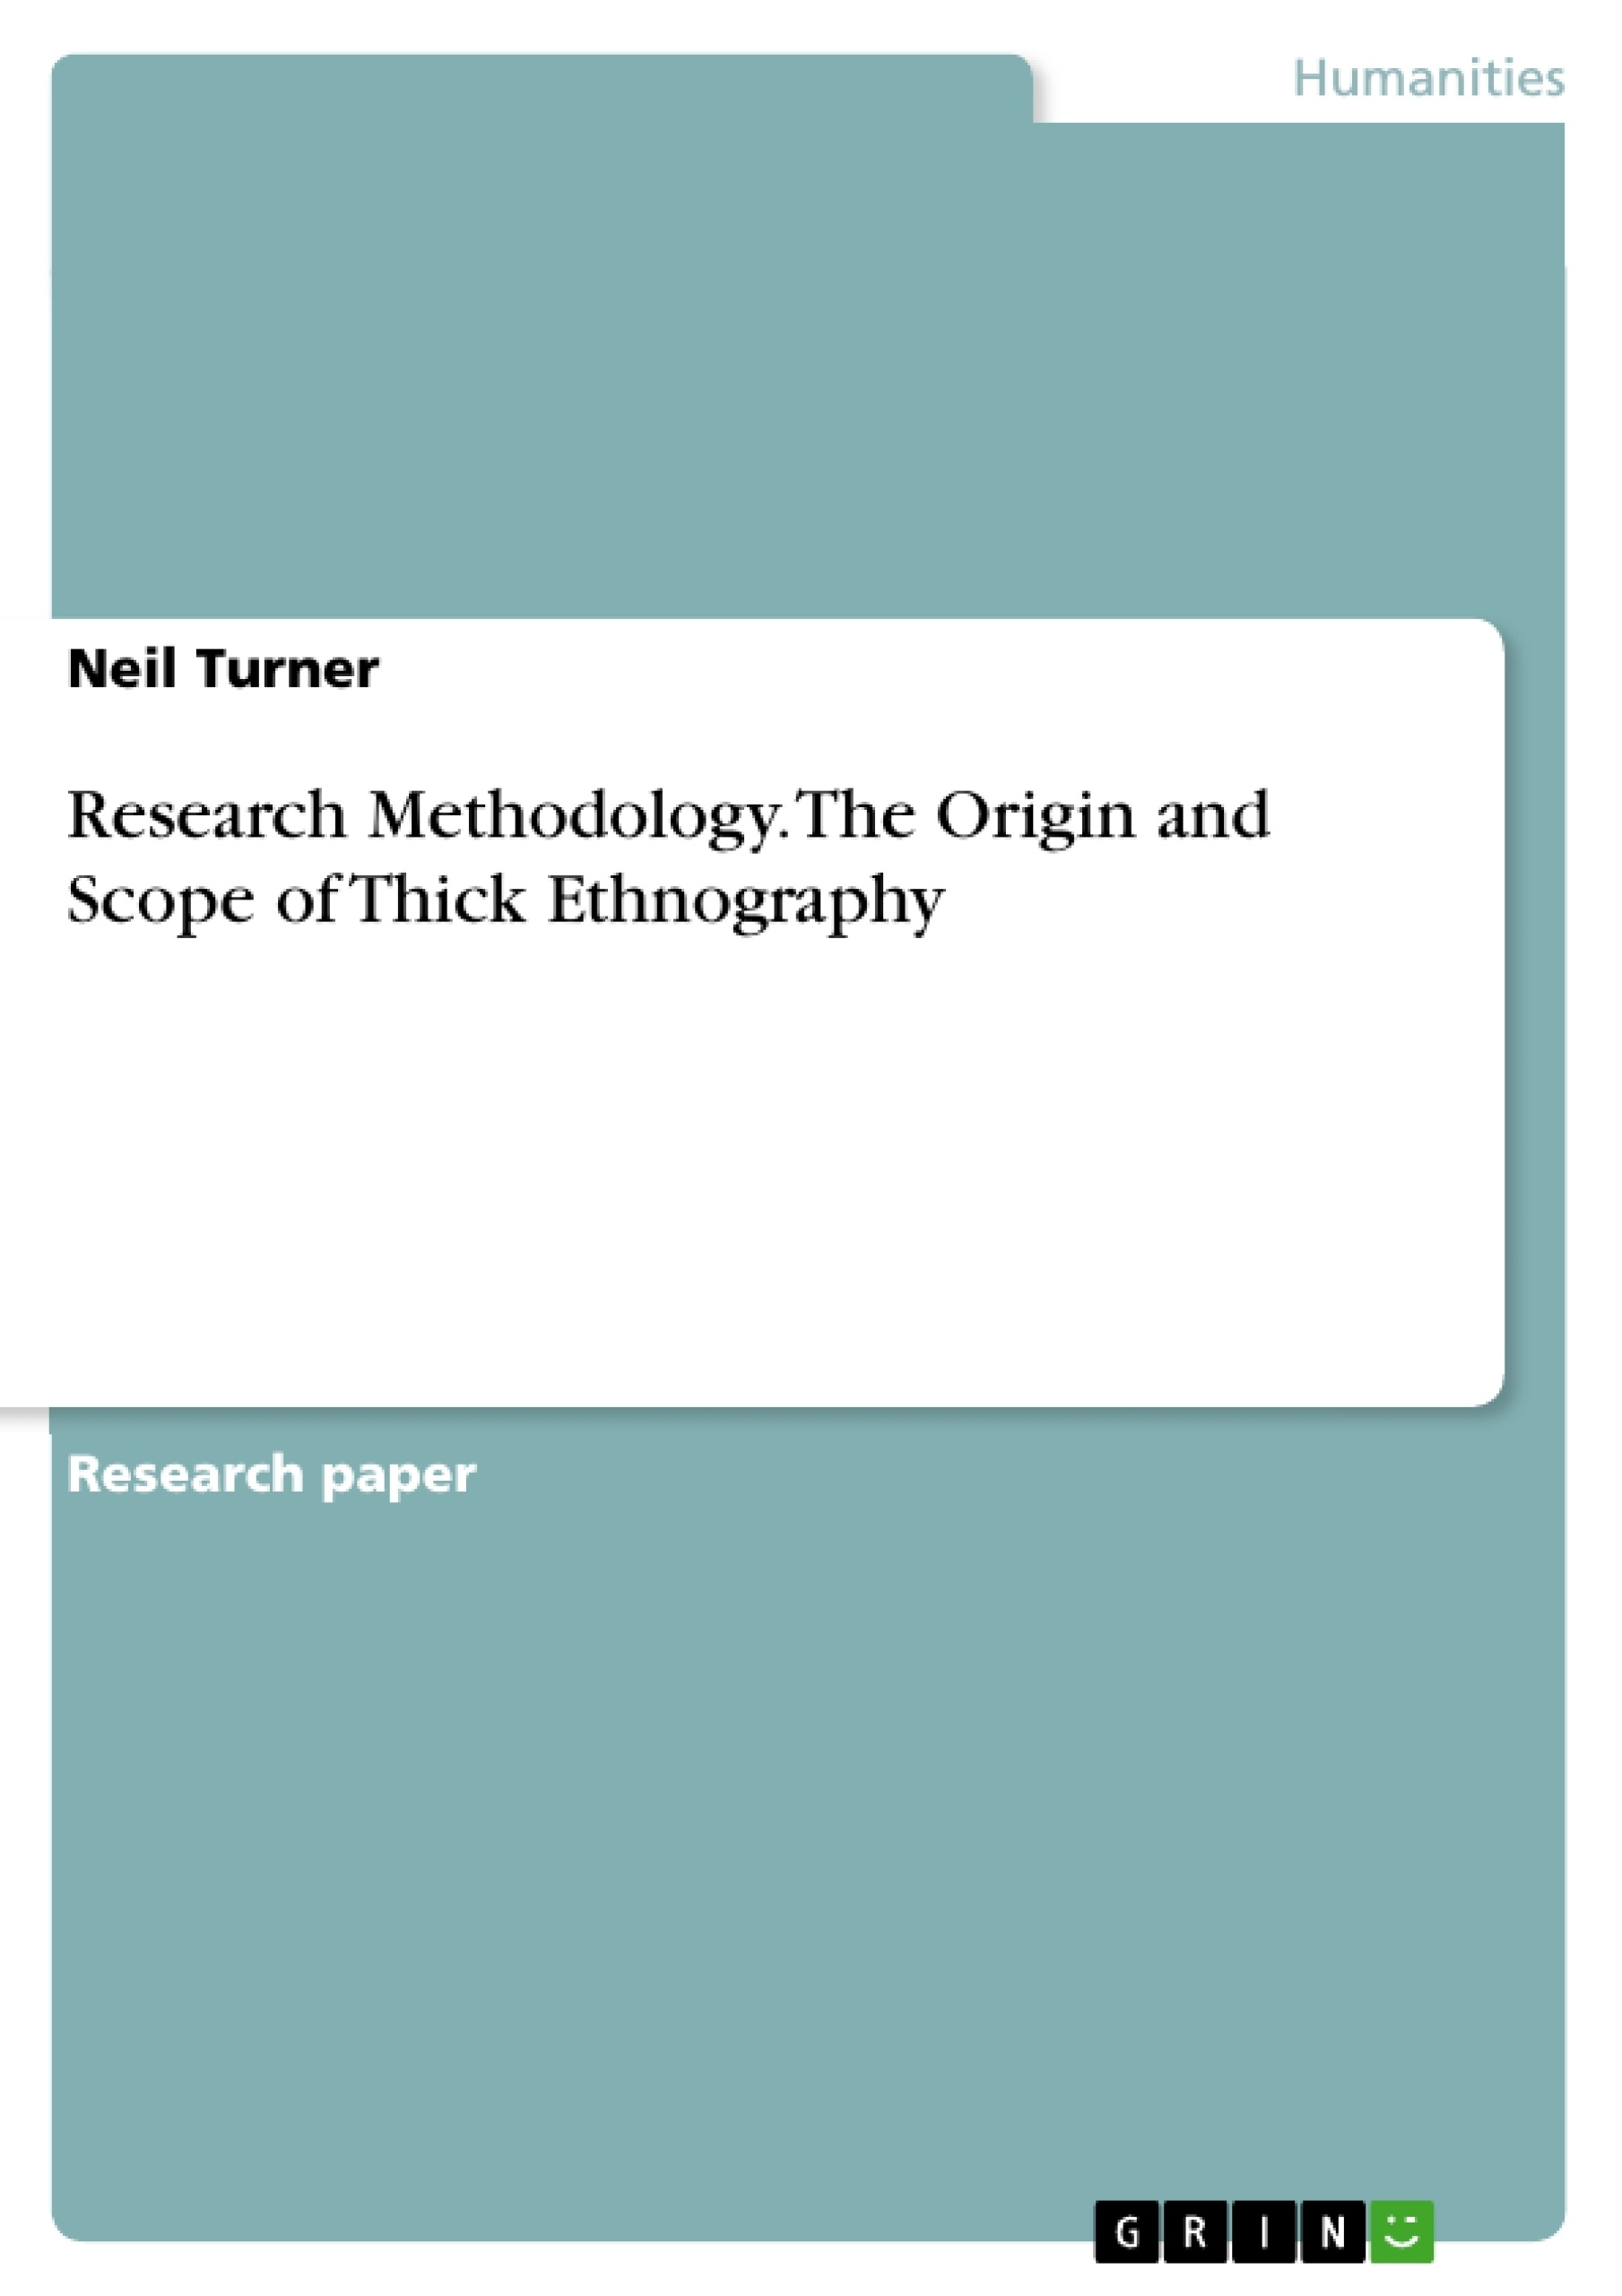 Research Methodology The Origin And Scope Of Thick Ethnography